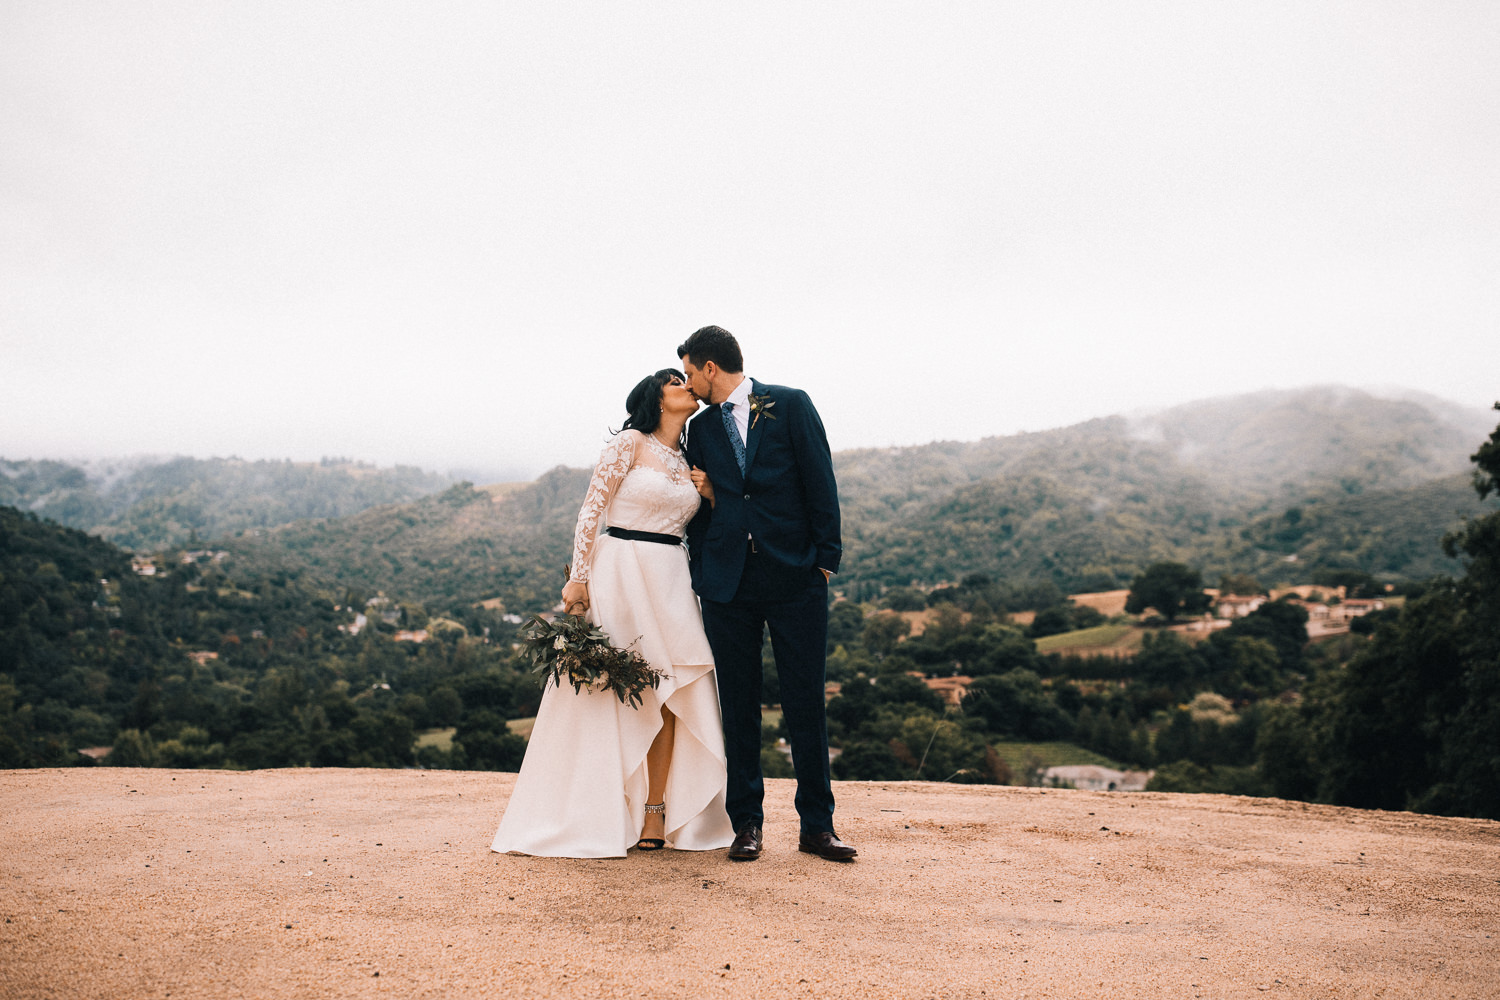 2019_05_ 182019.05.19 Lisa + Eddie South Bay Wedding Blog Photos Edited For Web 0103.jpg